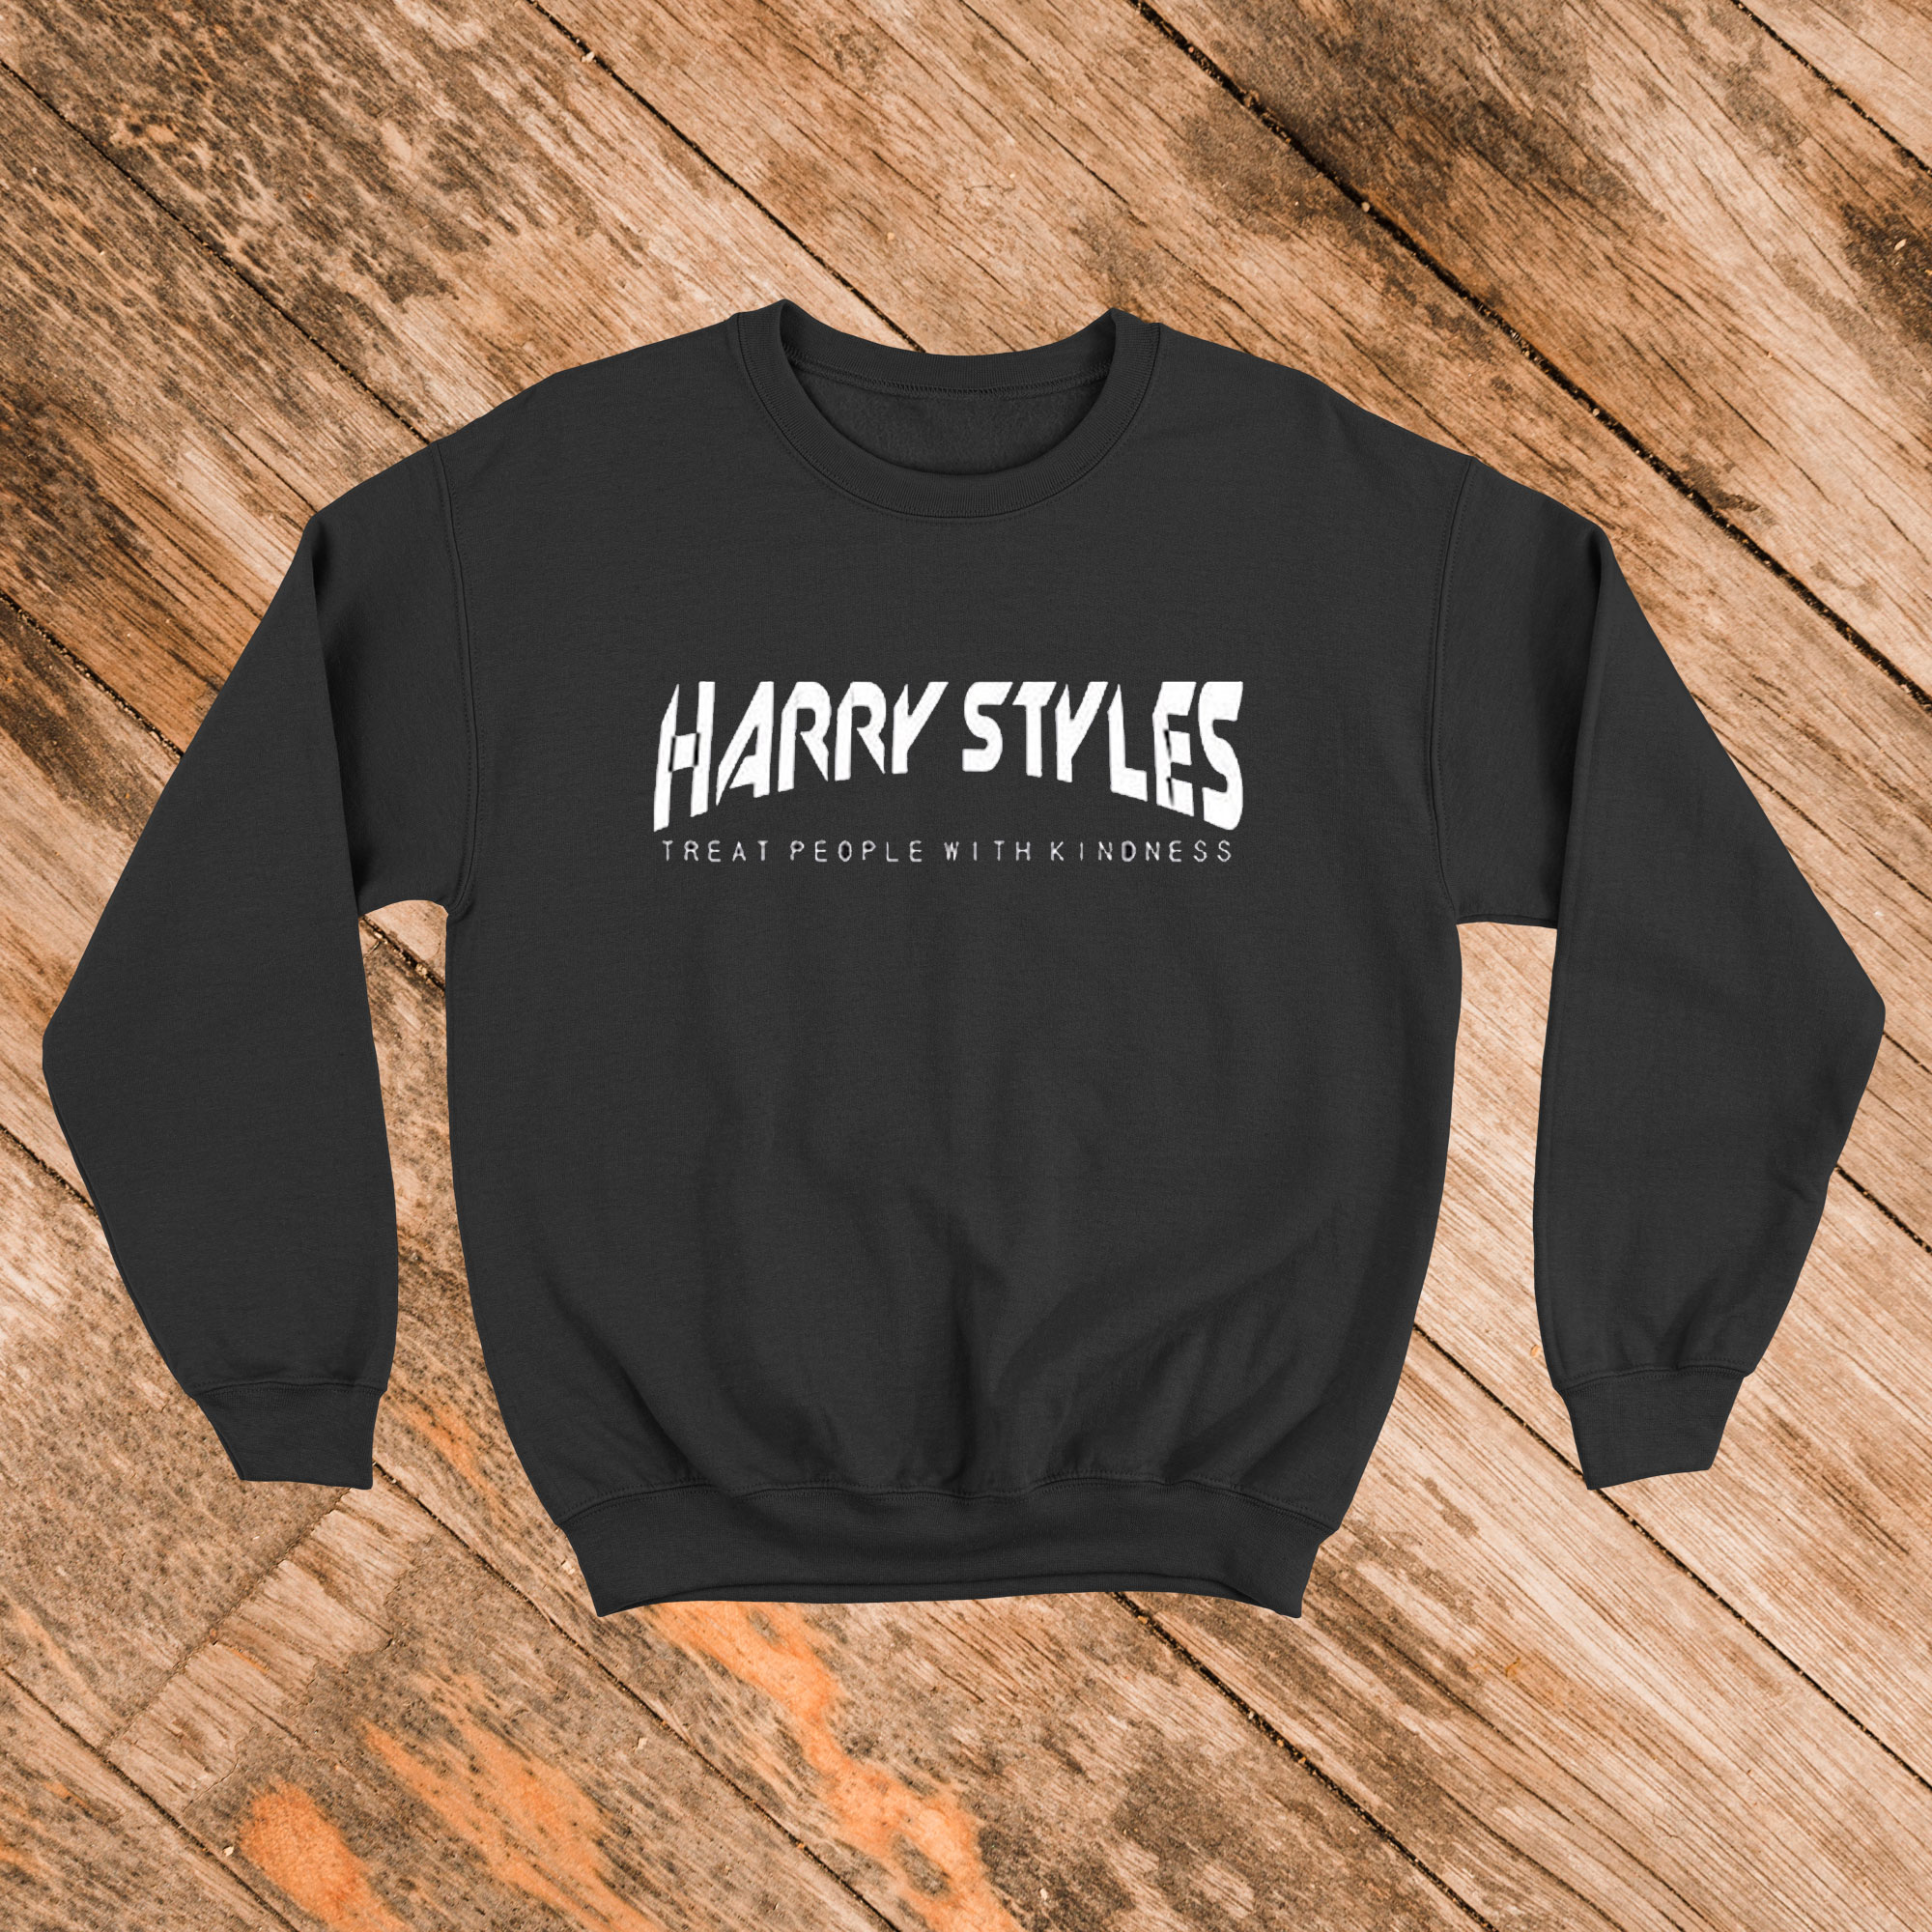 Compre Harry Styles Treat People With Kindness